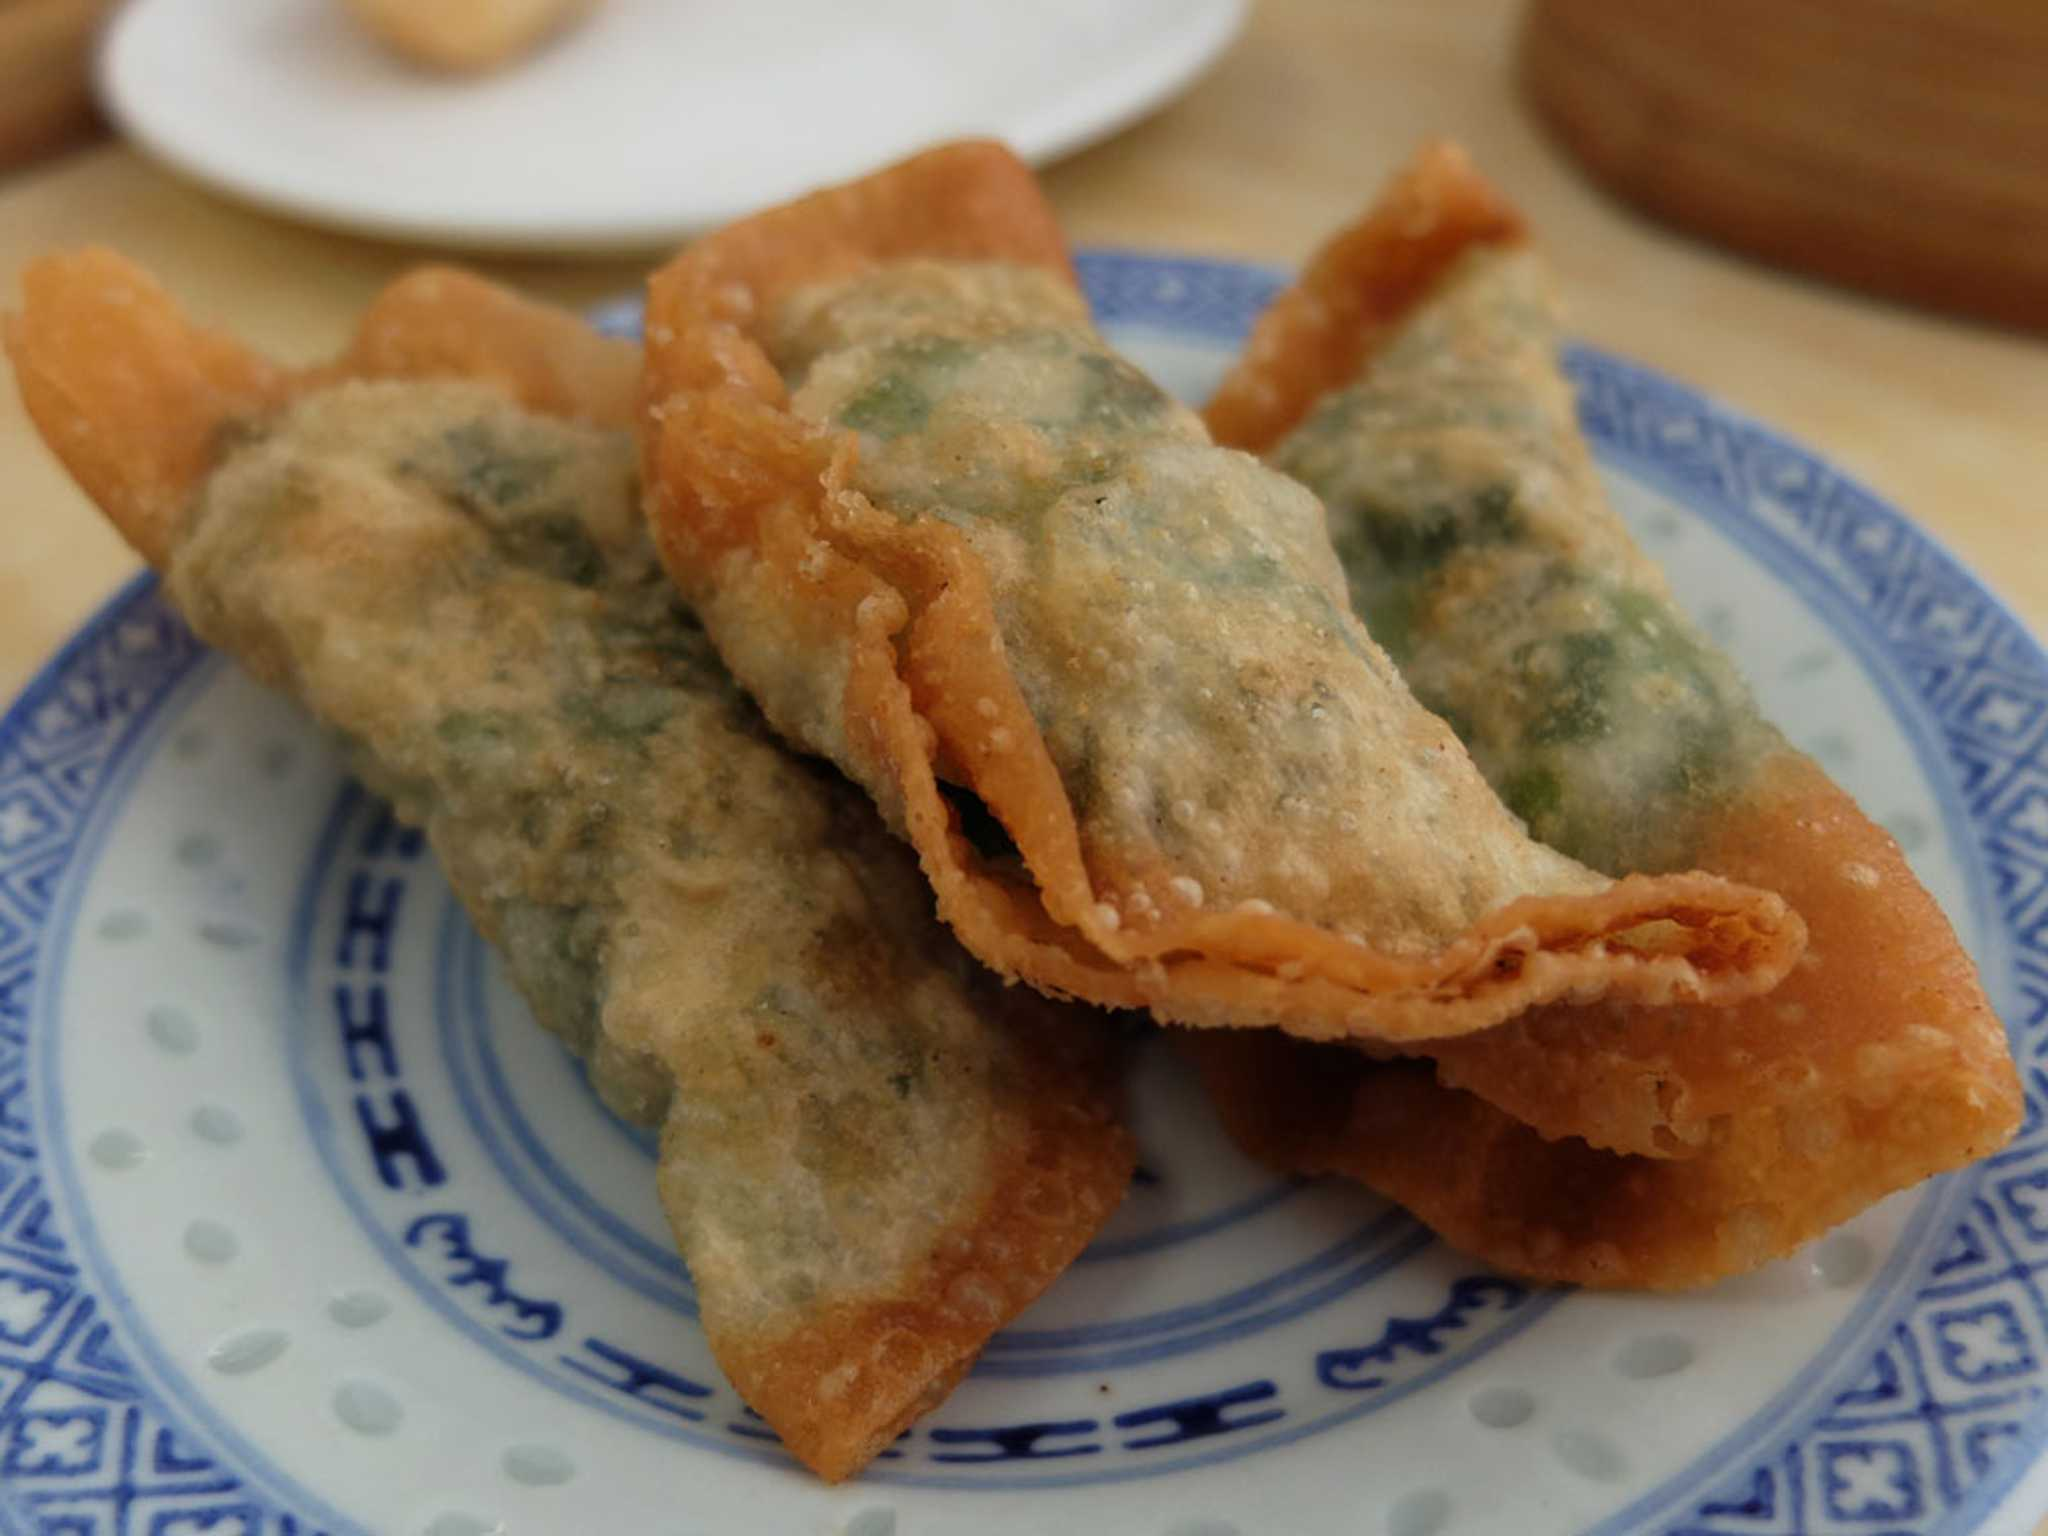 halal-deep-fried-dumpling-with-shrimp-and-chinese-chives